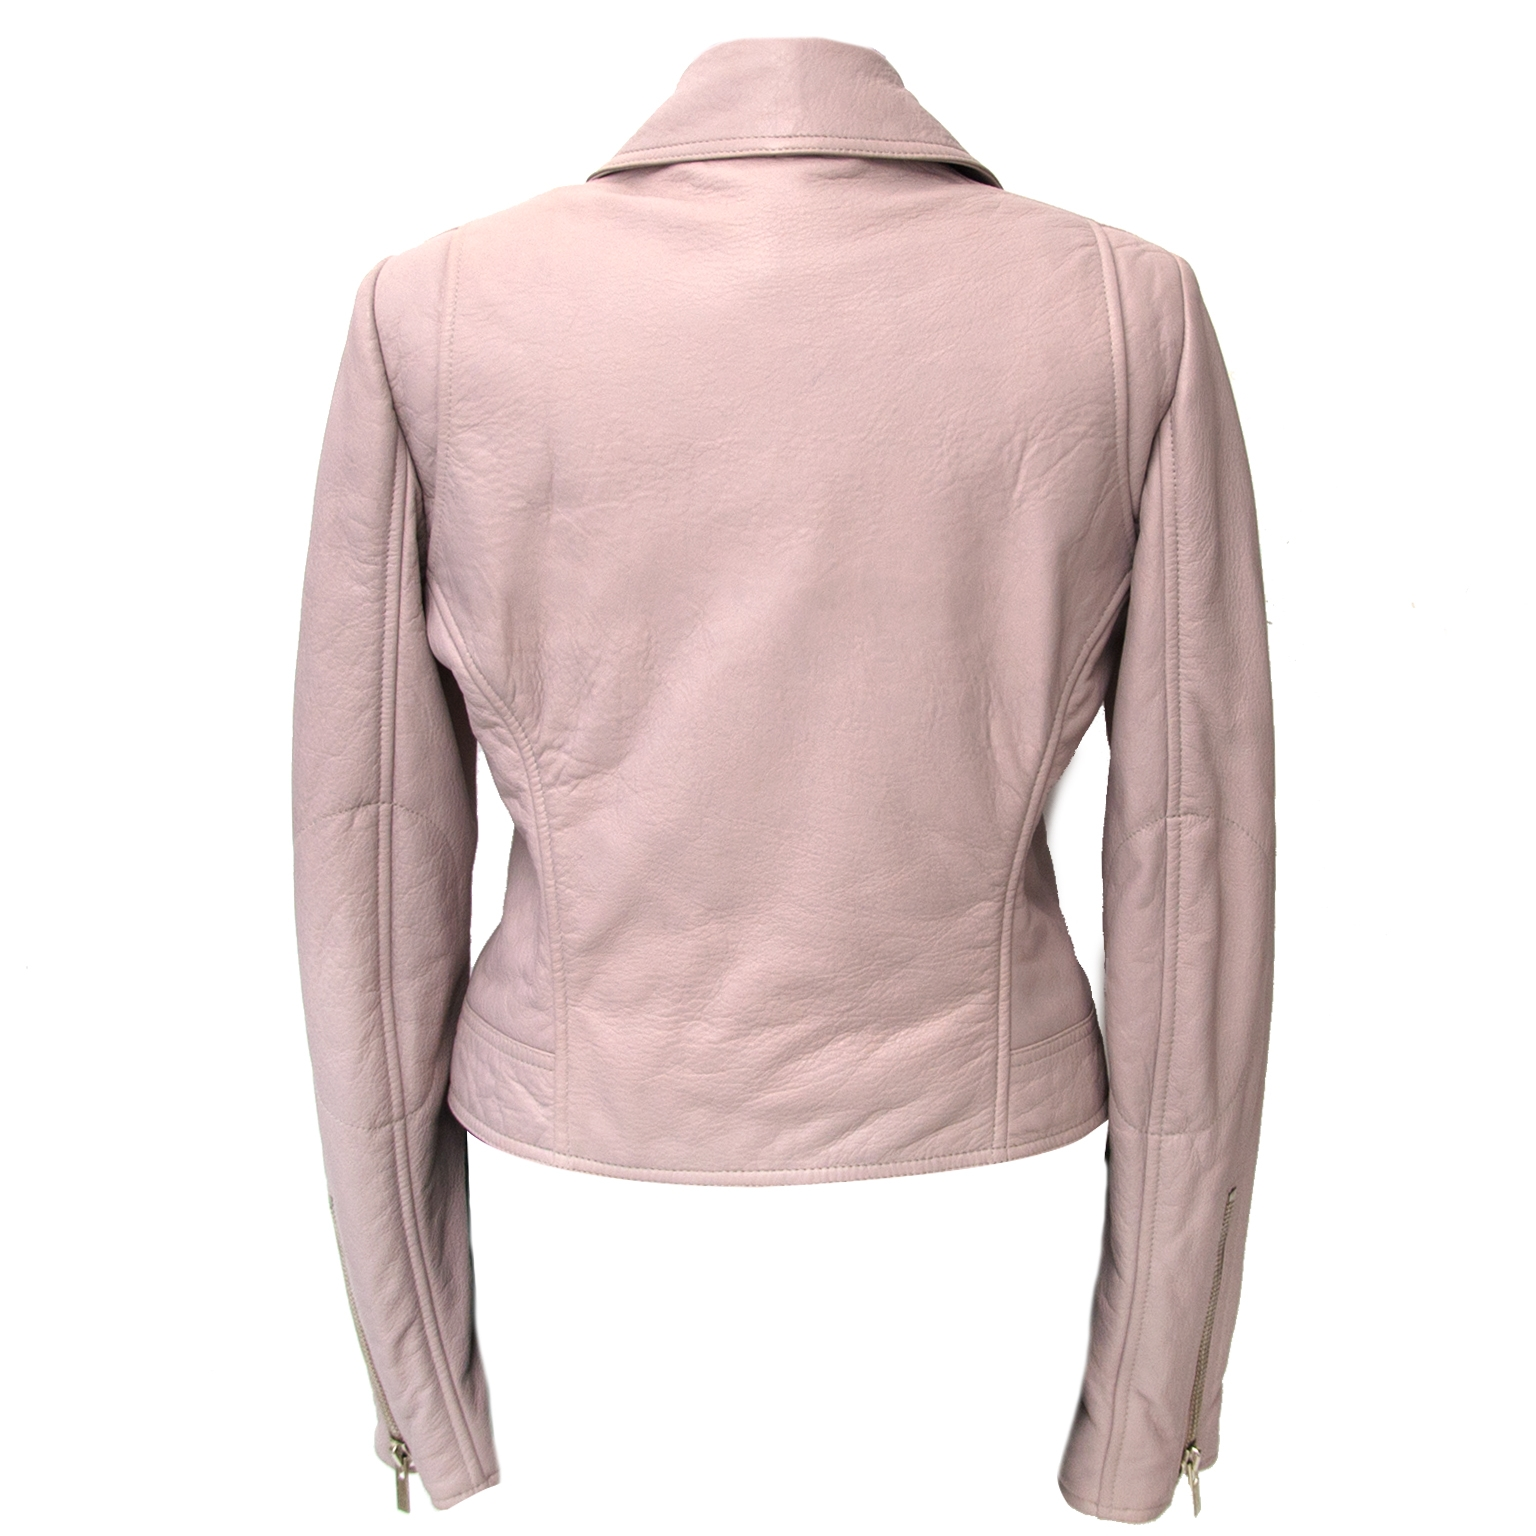 Balenciaga Pink Leather Jacket - Size 38